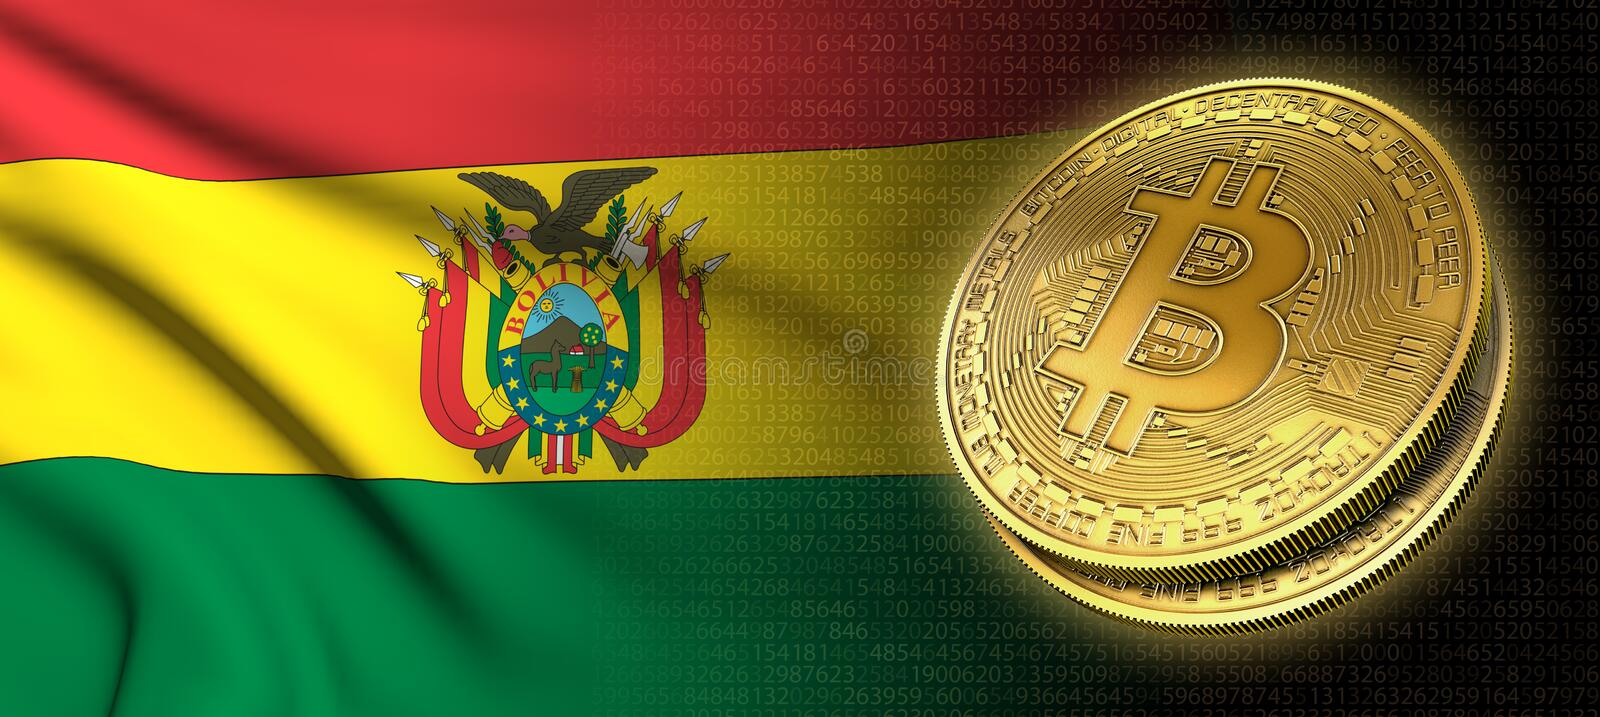 gold blacked coin cryptocurrency panama